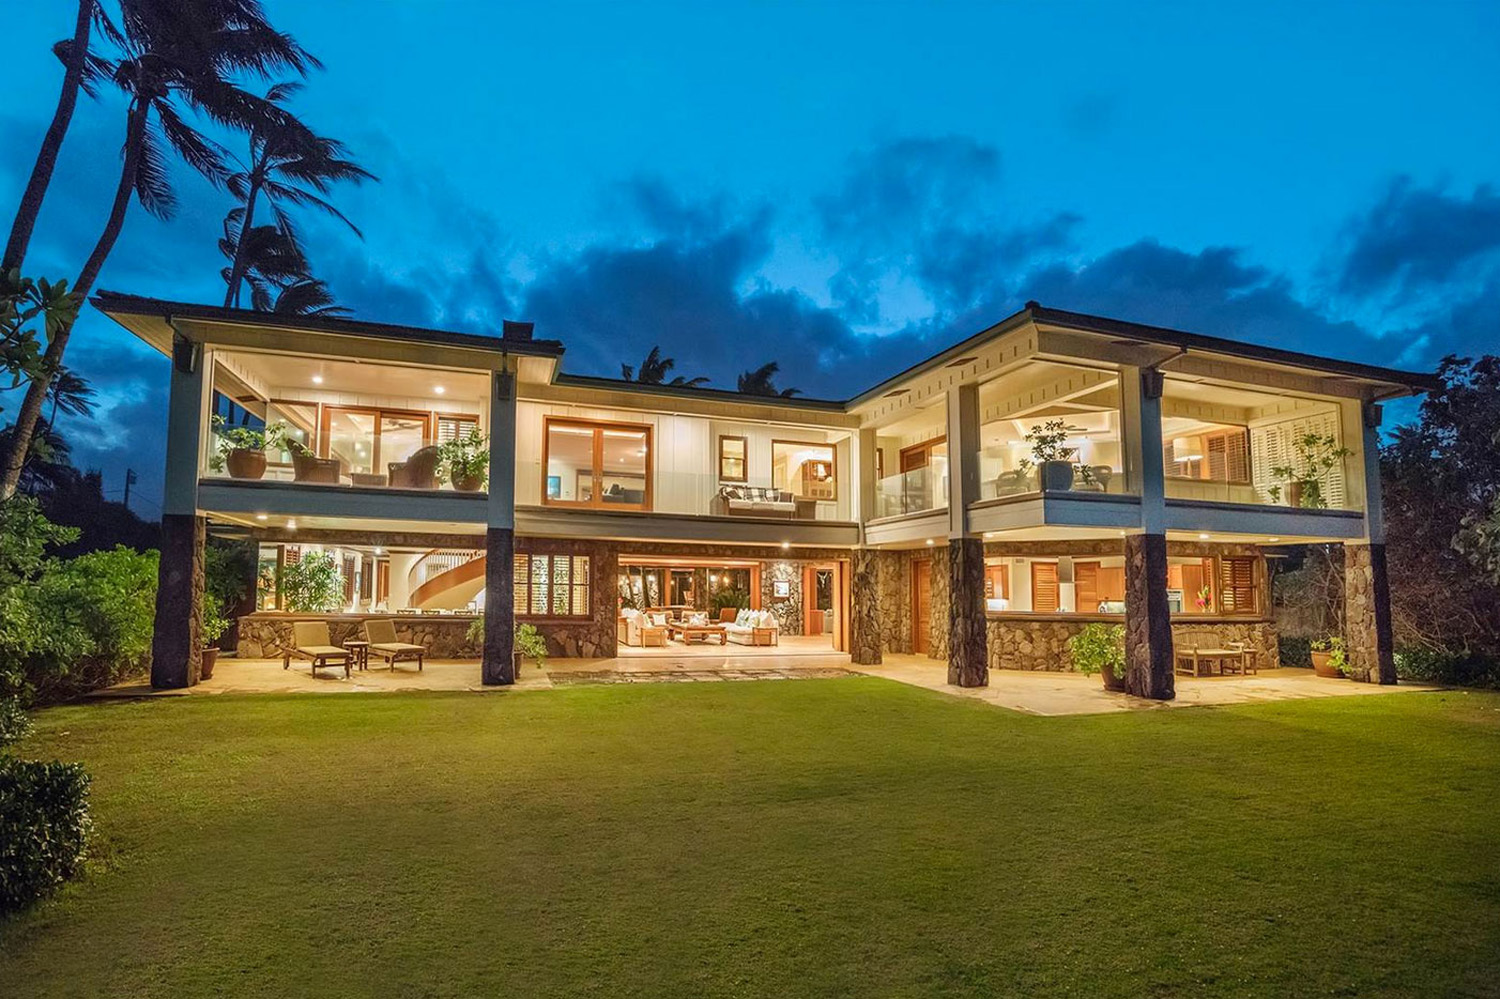 Make Everyday Feel Like a Vacation With This Dazzling Hawaii Mansion